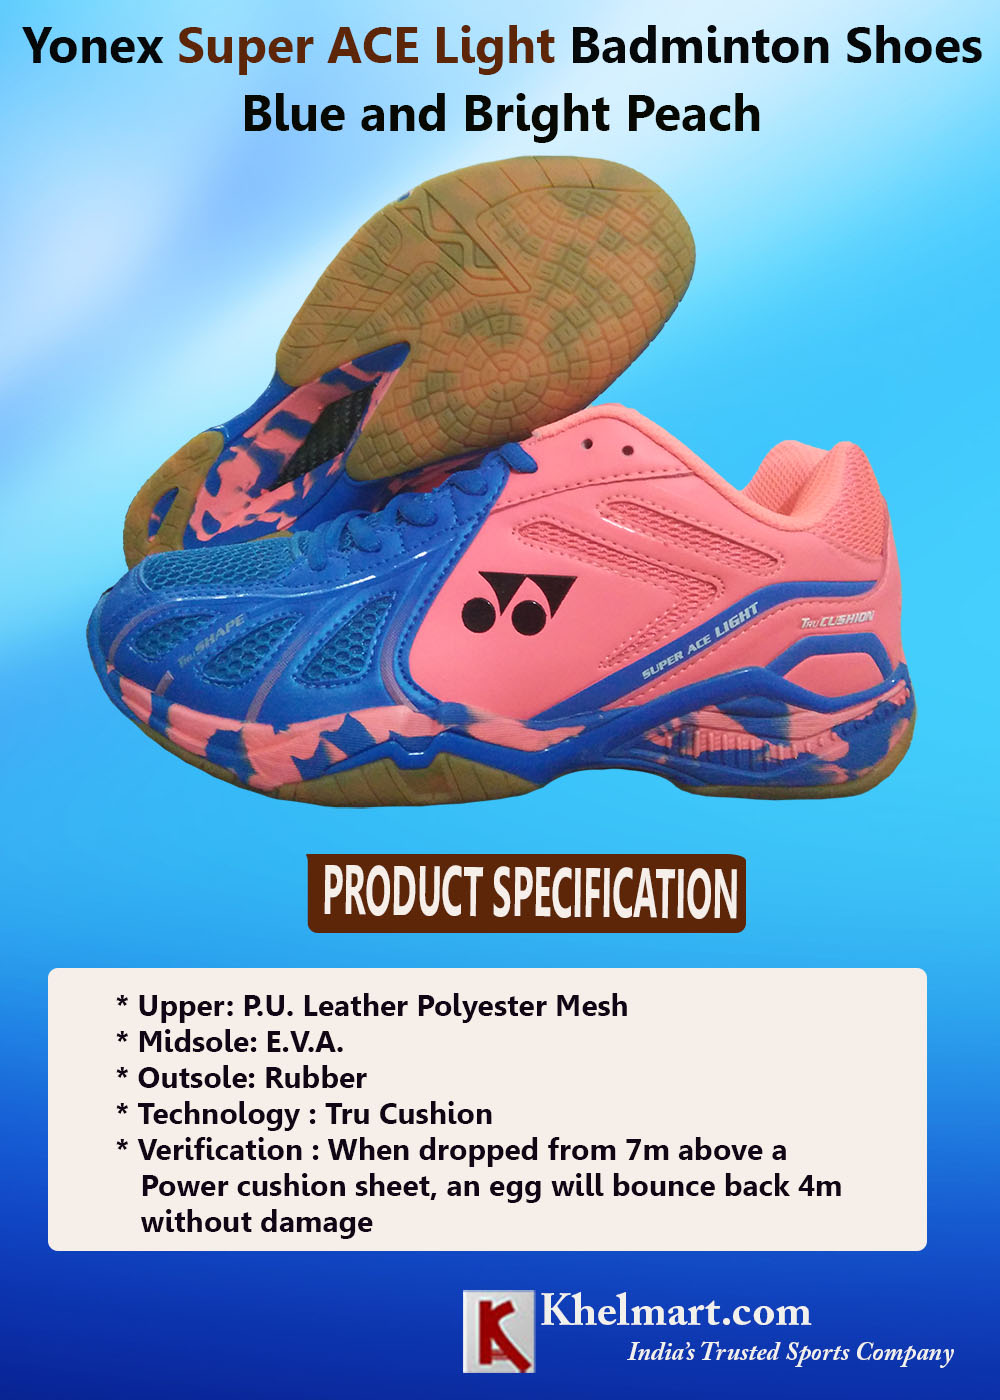 Yonex-Super-ACE-Light-Badminton-Shoes-Blue-and-Bright-Peach.jpg